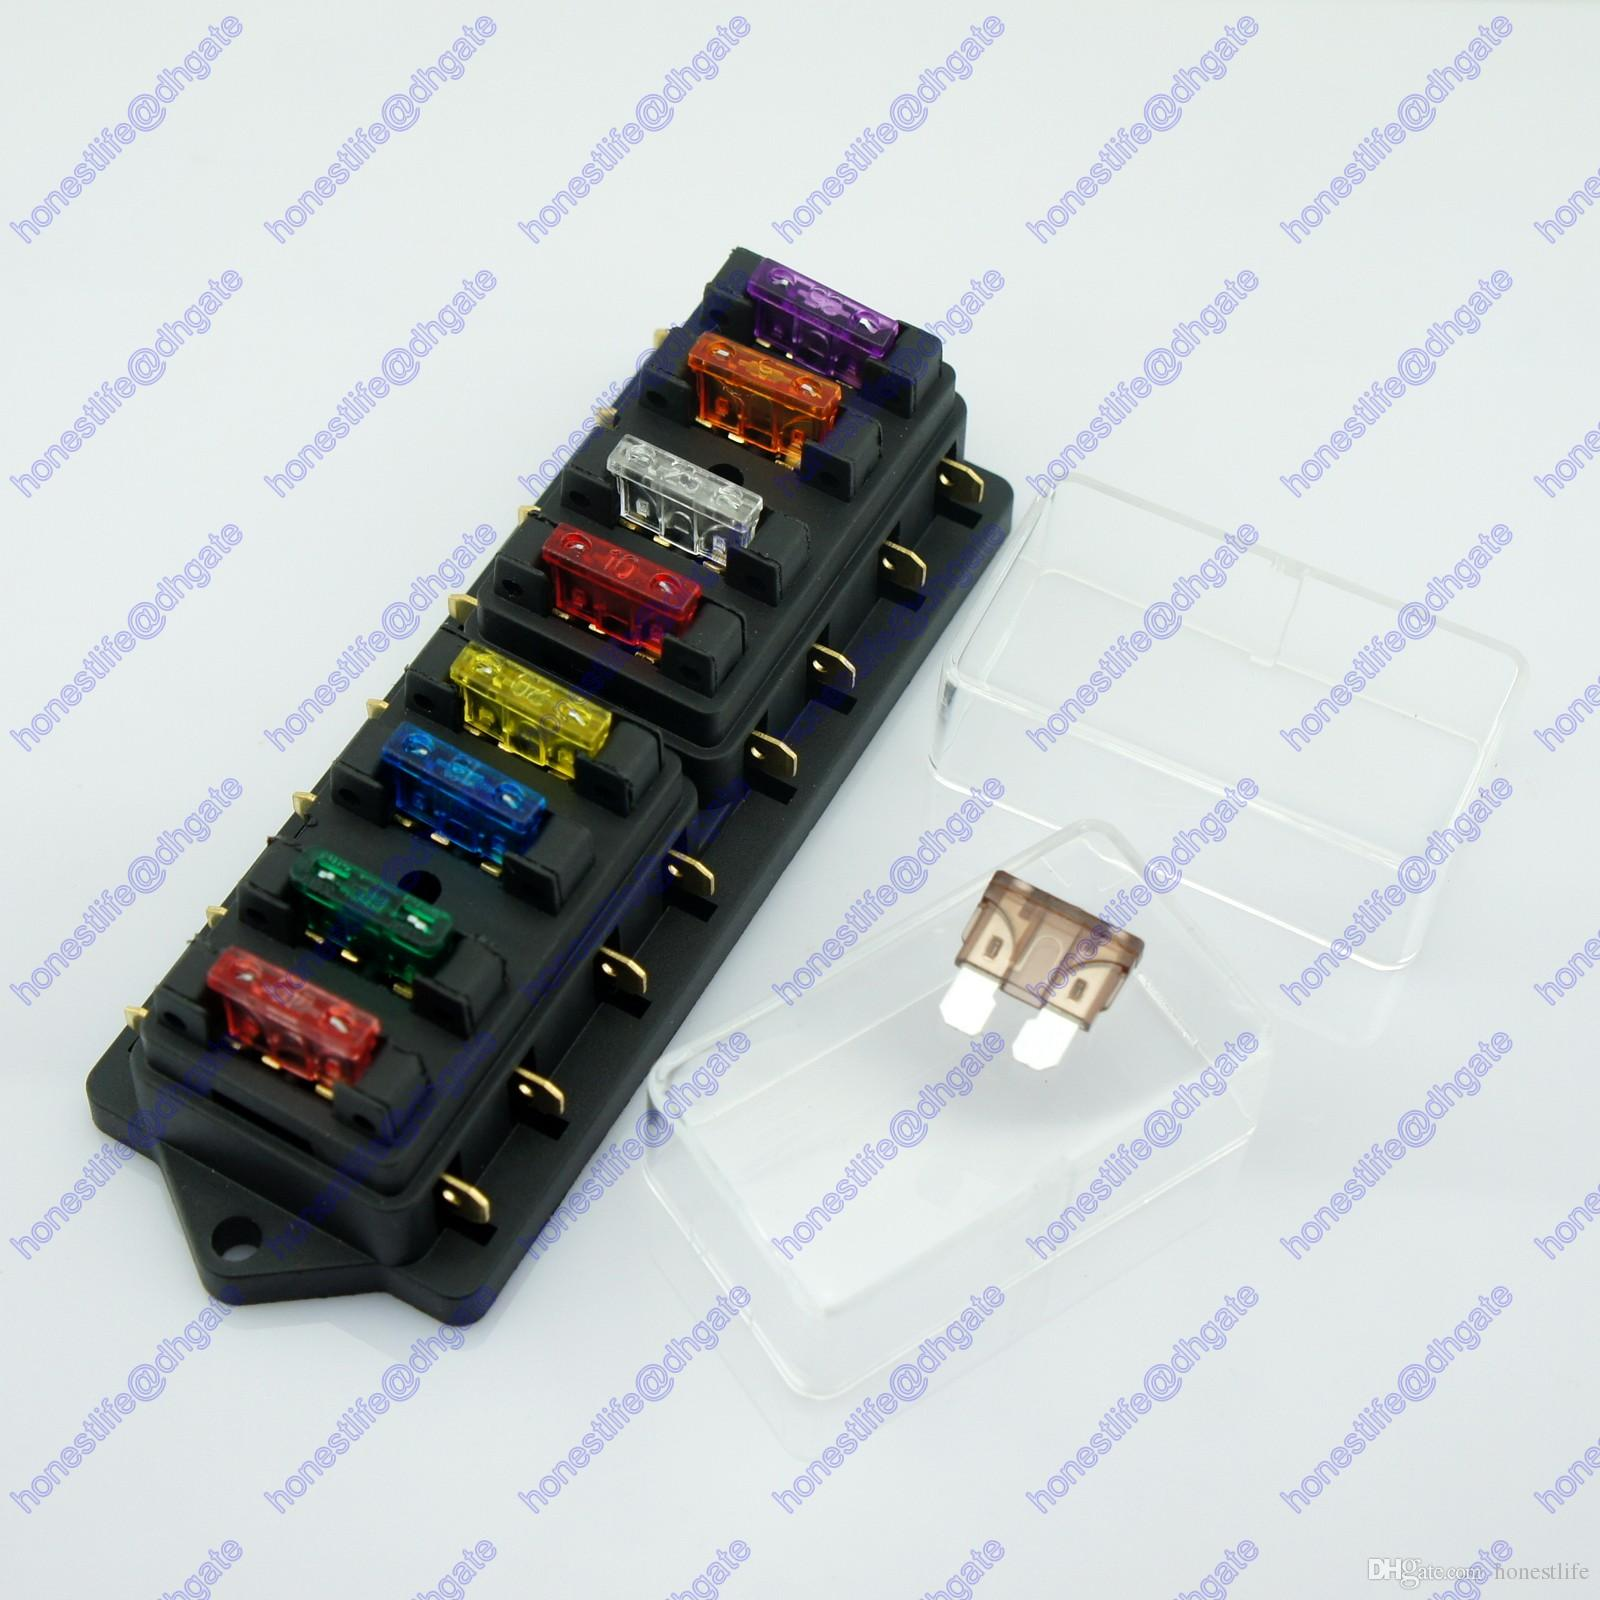 8 way atu standard blade fuse box holder 2017 8 way atu standard blade fuse box holder 12v 24v car truck rv camper fuse box at bayanpartner.co